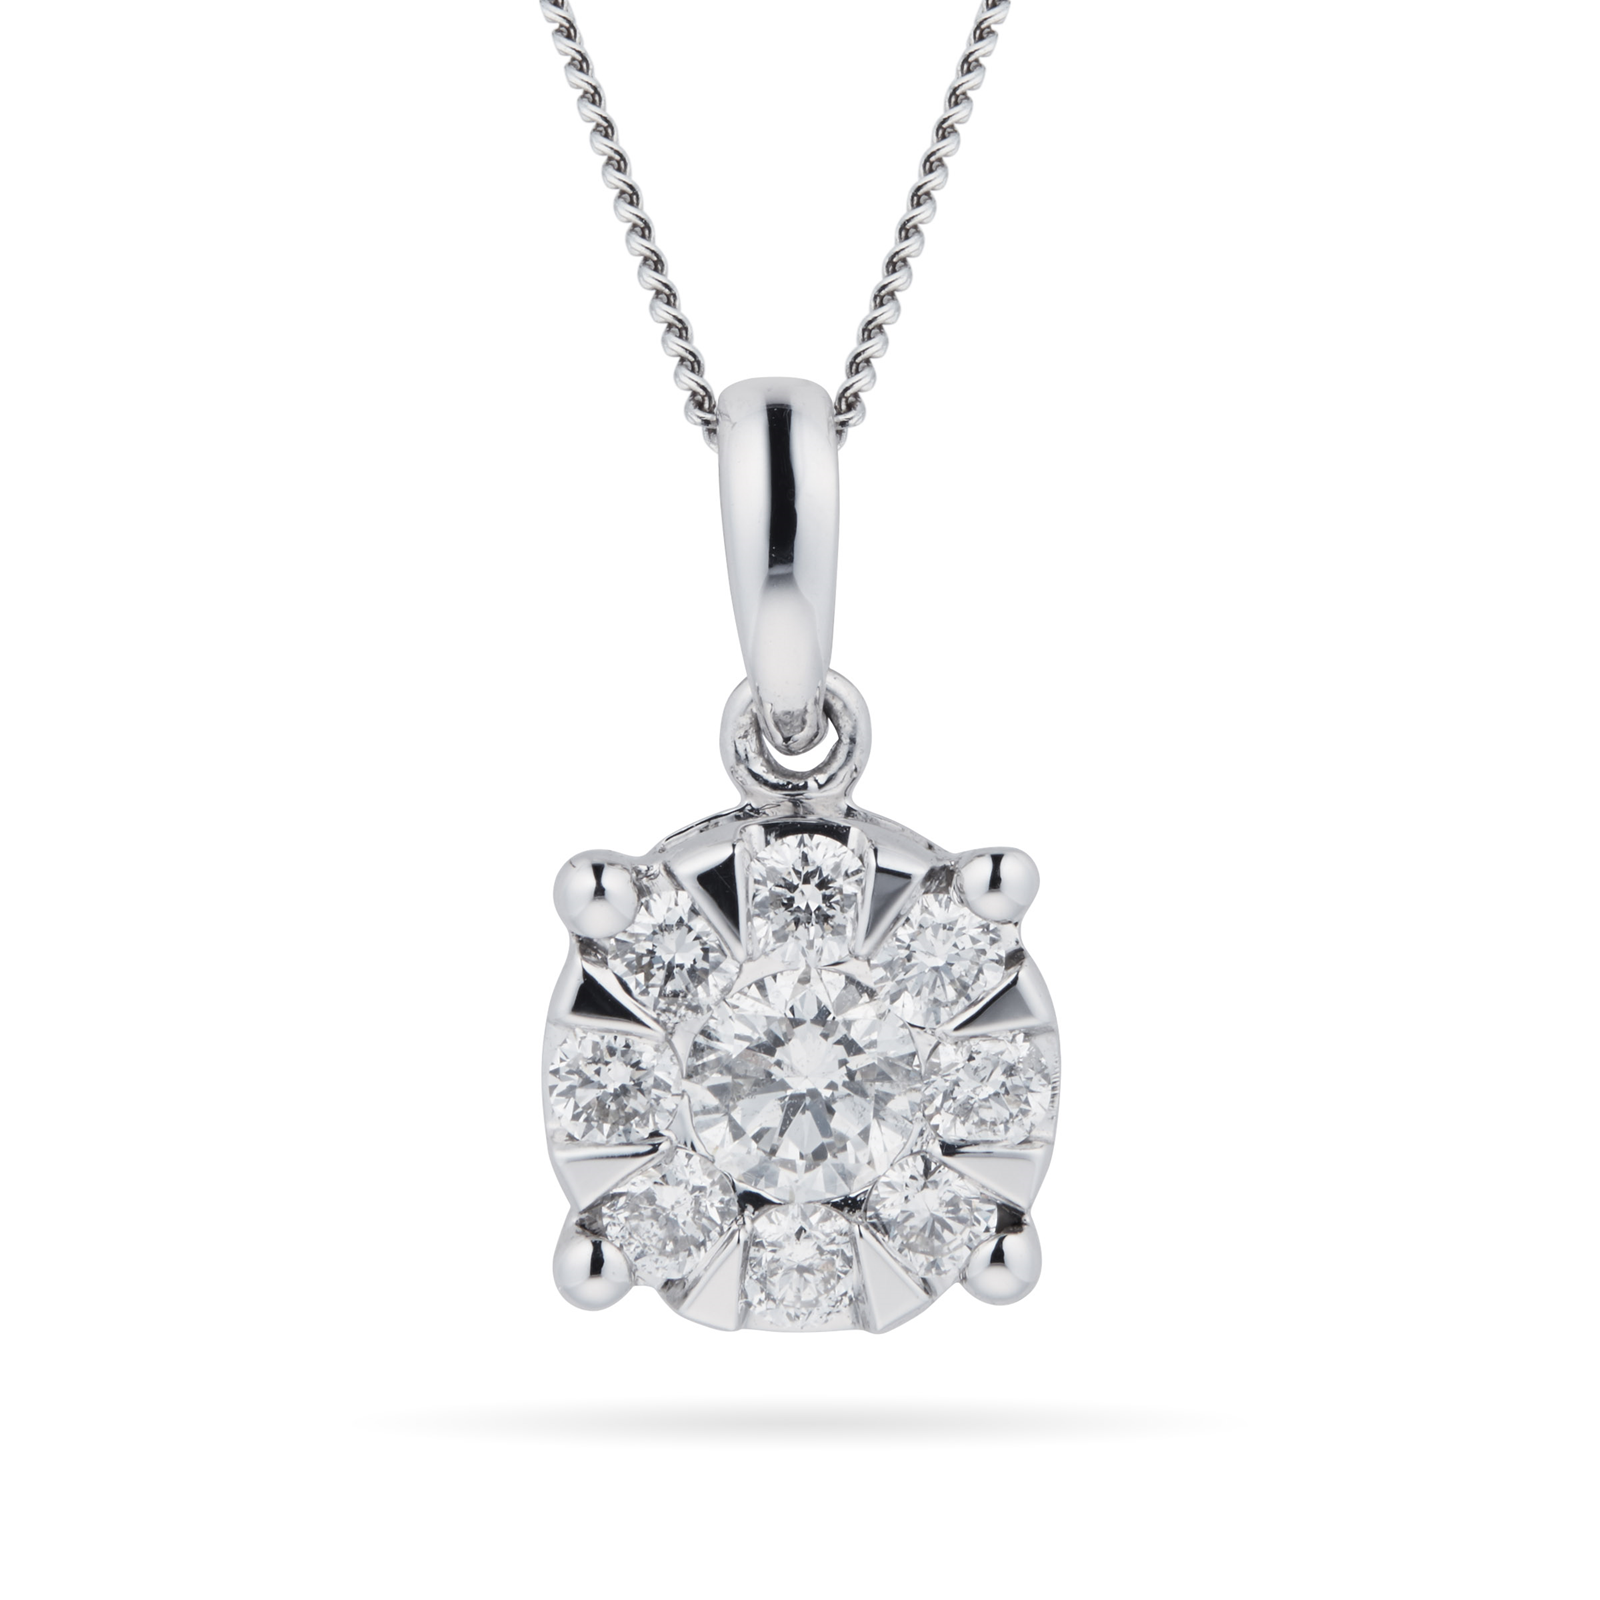 solitaire rsp necklace gold pendant lewis at pdp johnlewis online com ewa white main john buyewa diamond